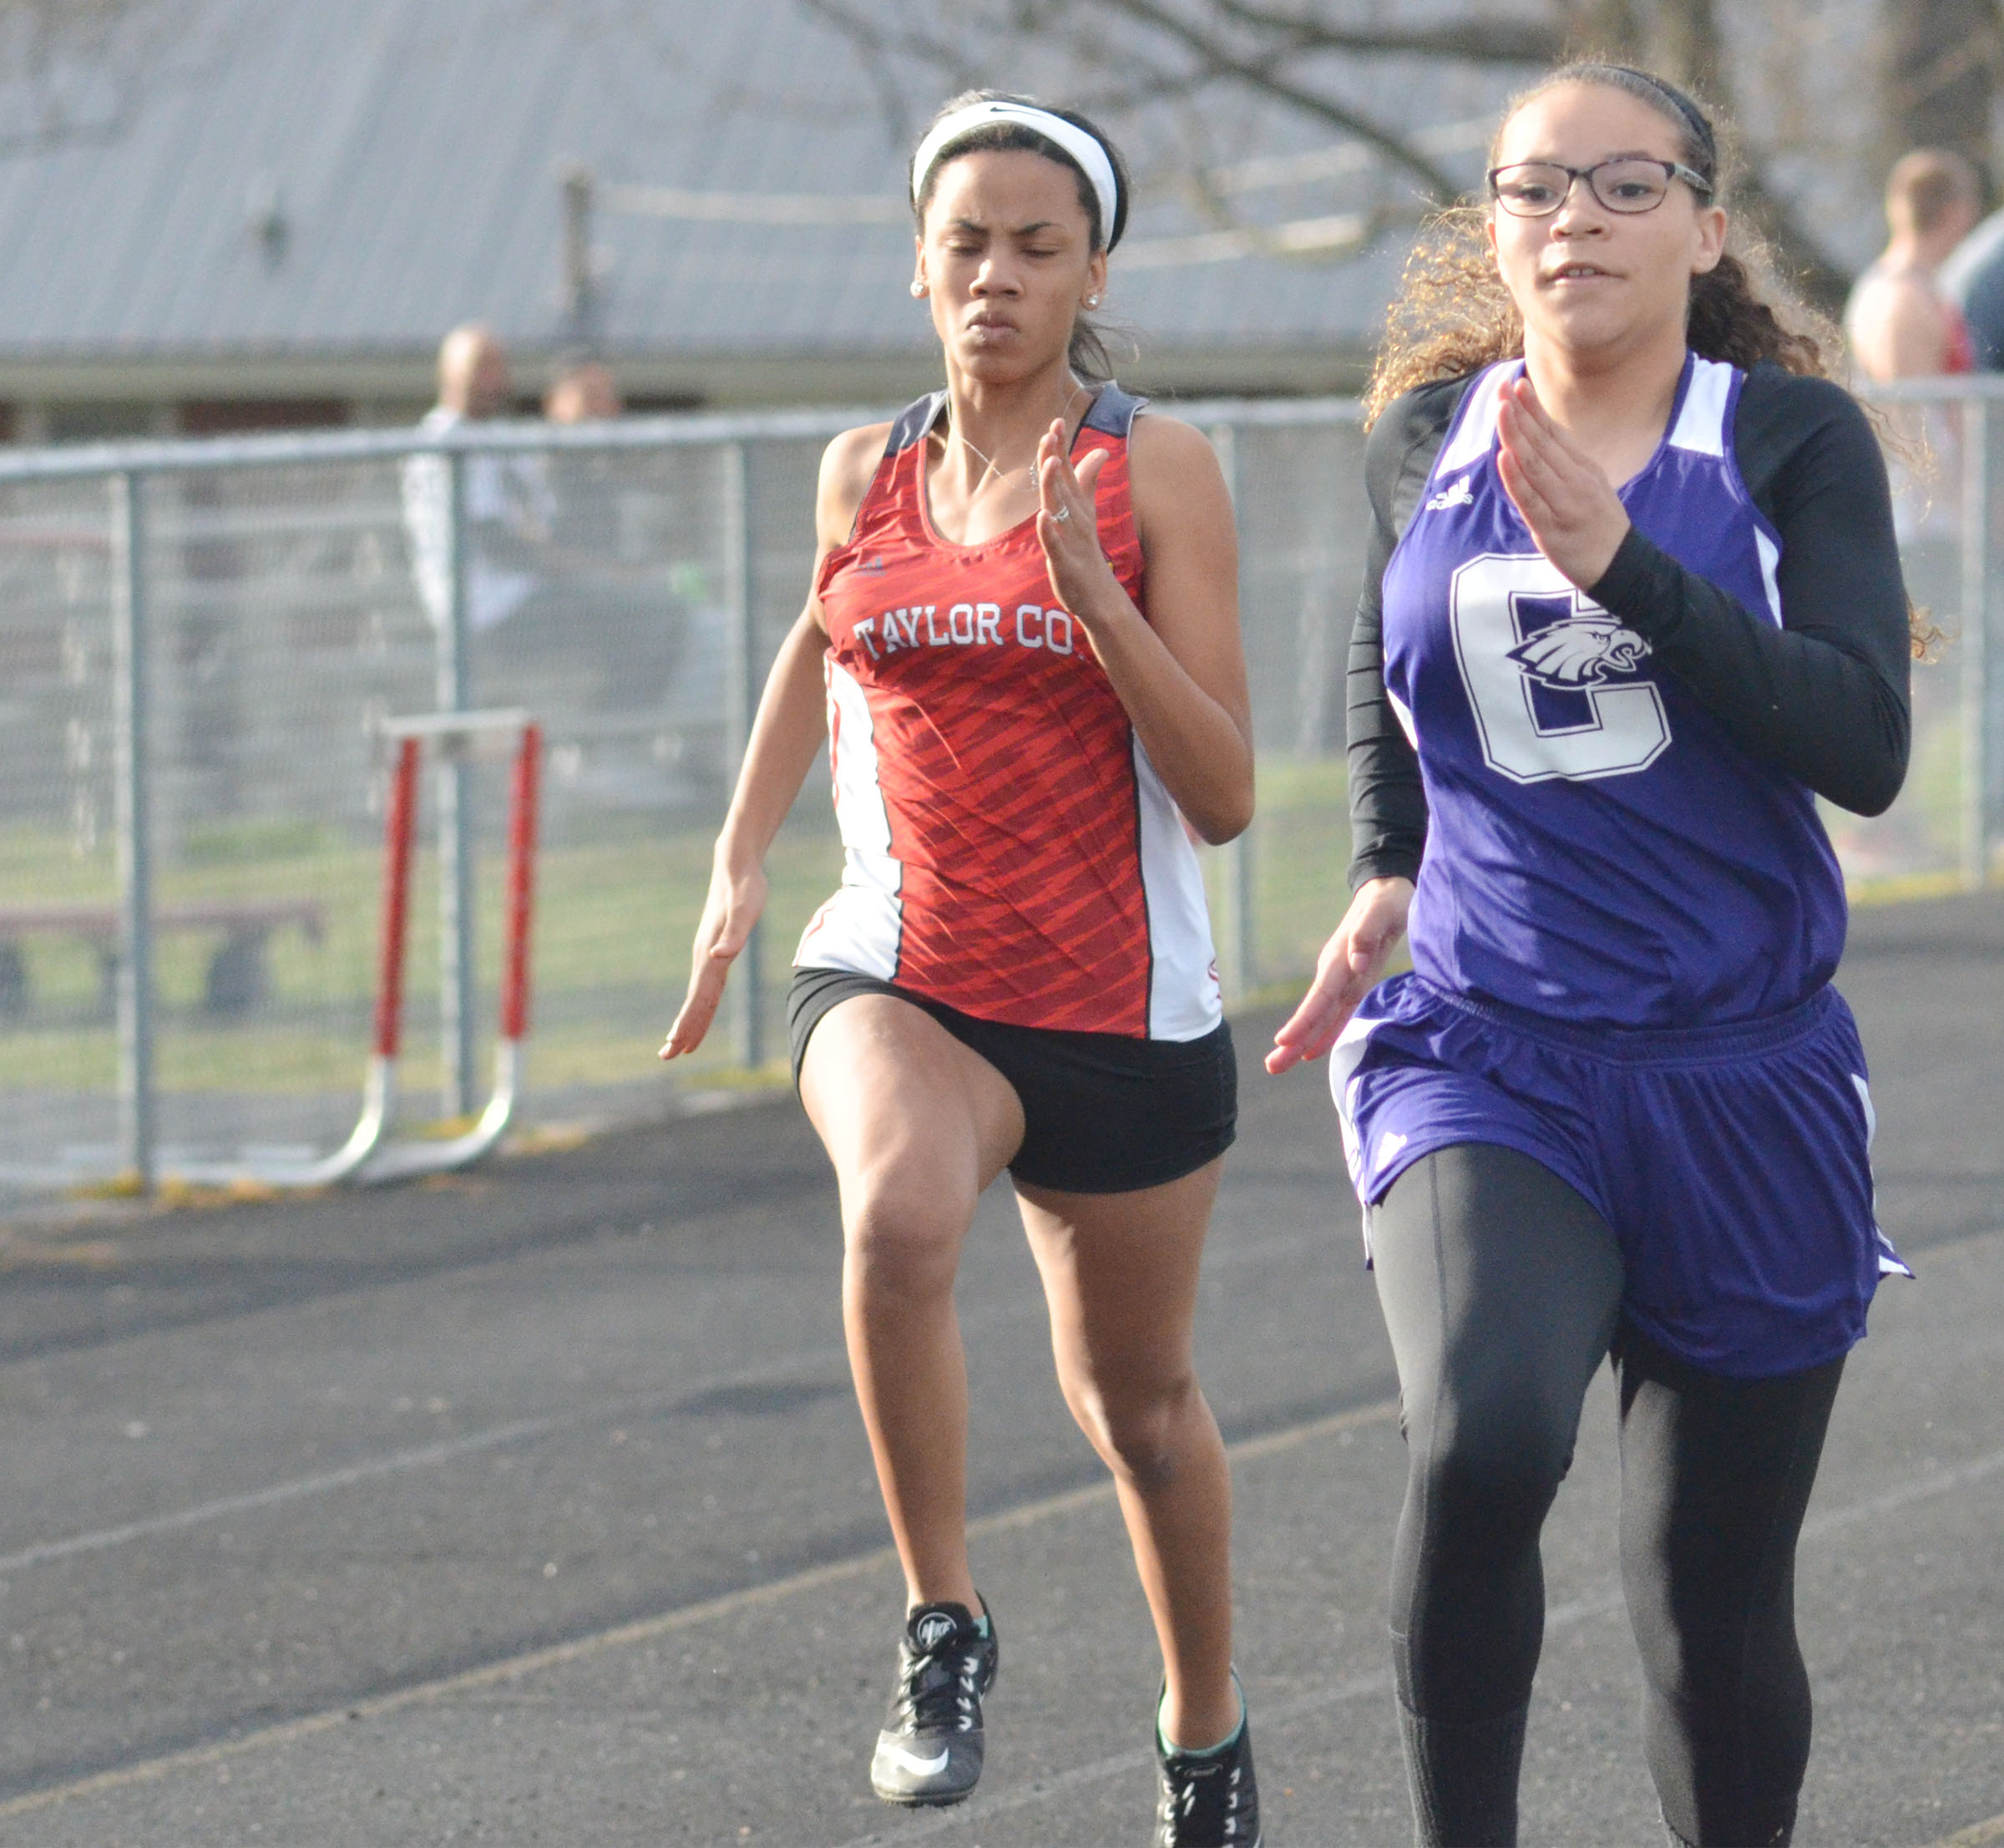 CHS freshman Taliyah Hazelwood, at right, runs.